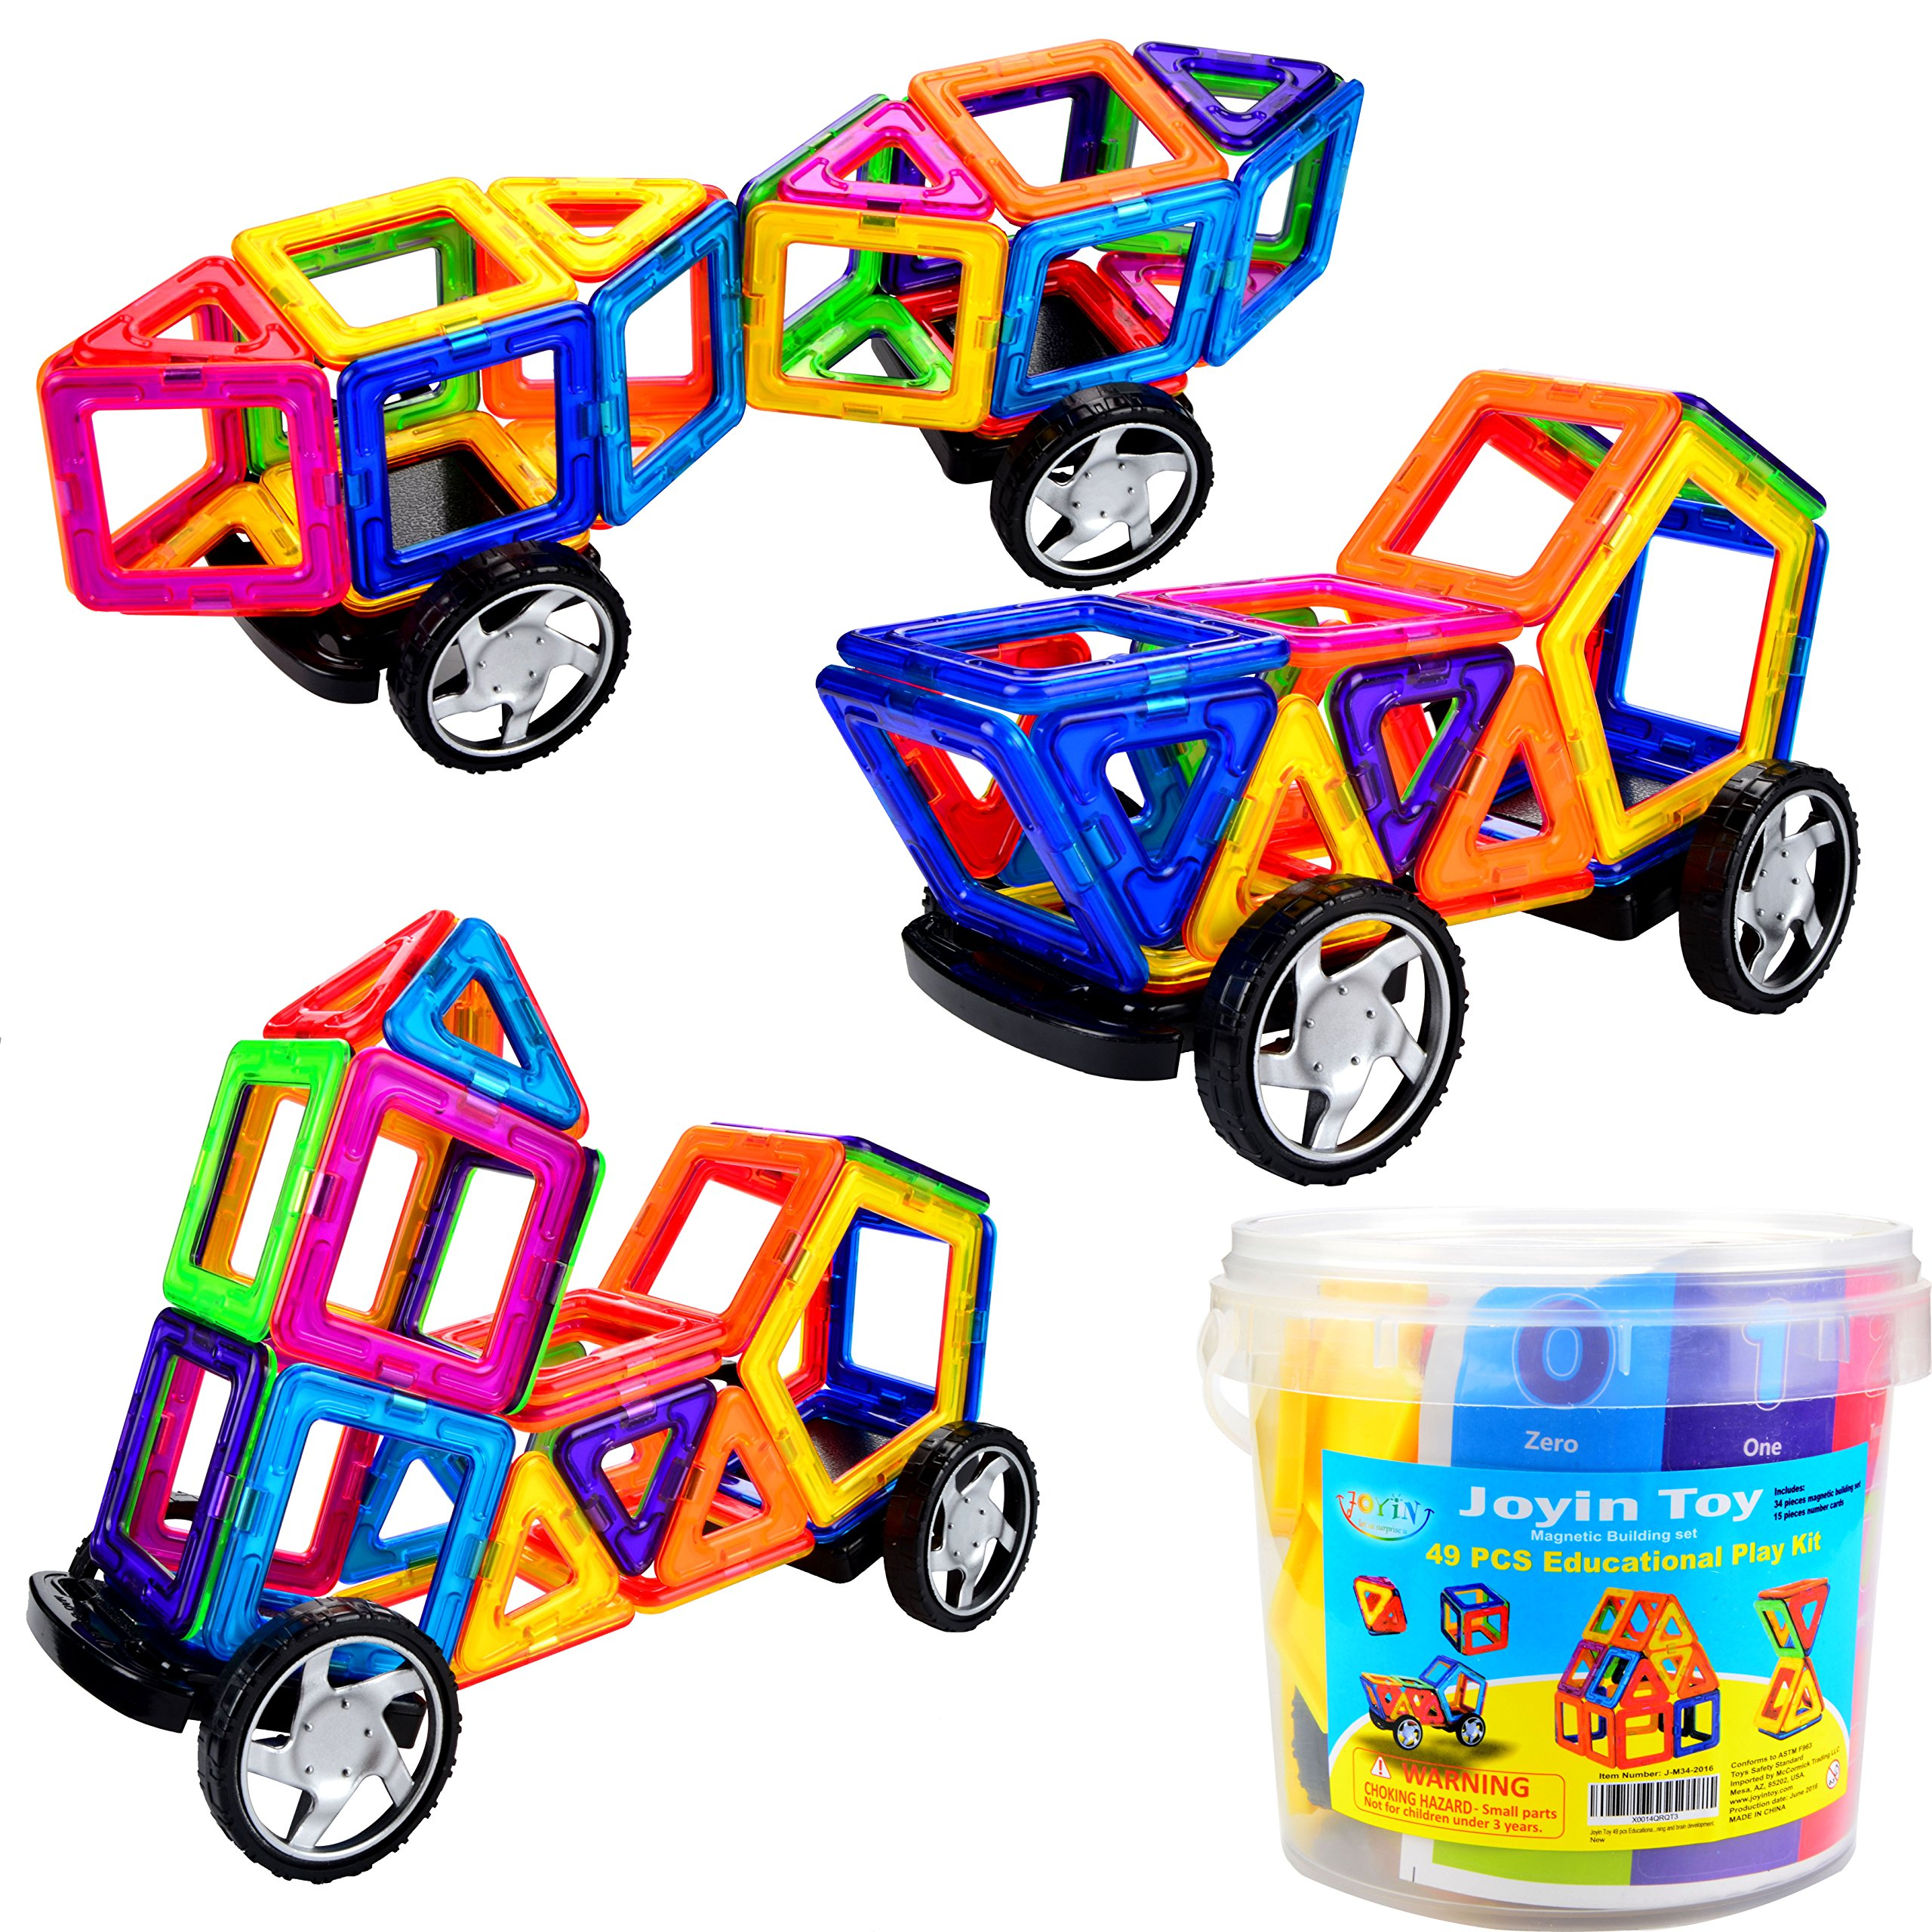 Joyin Toy 49 Pieces Magnetic Building Set Educational Play Kit In Plastic Pac.. 12